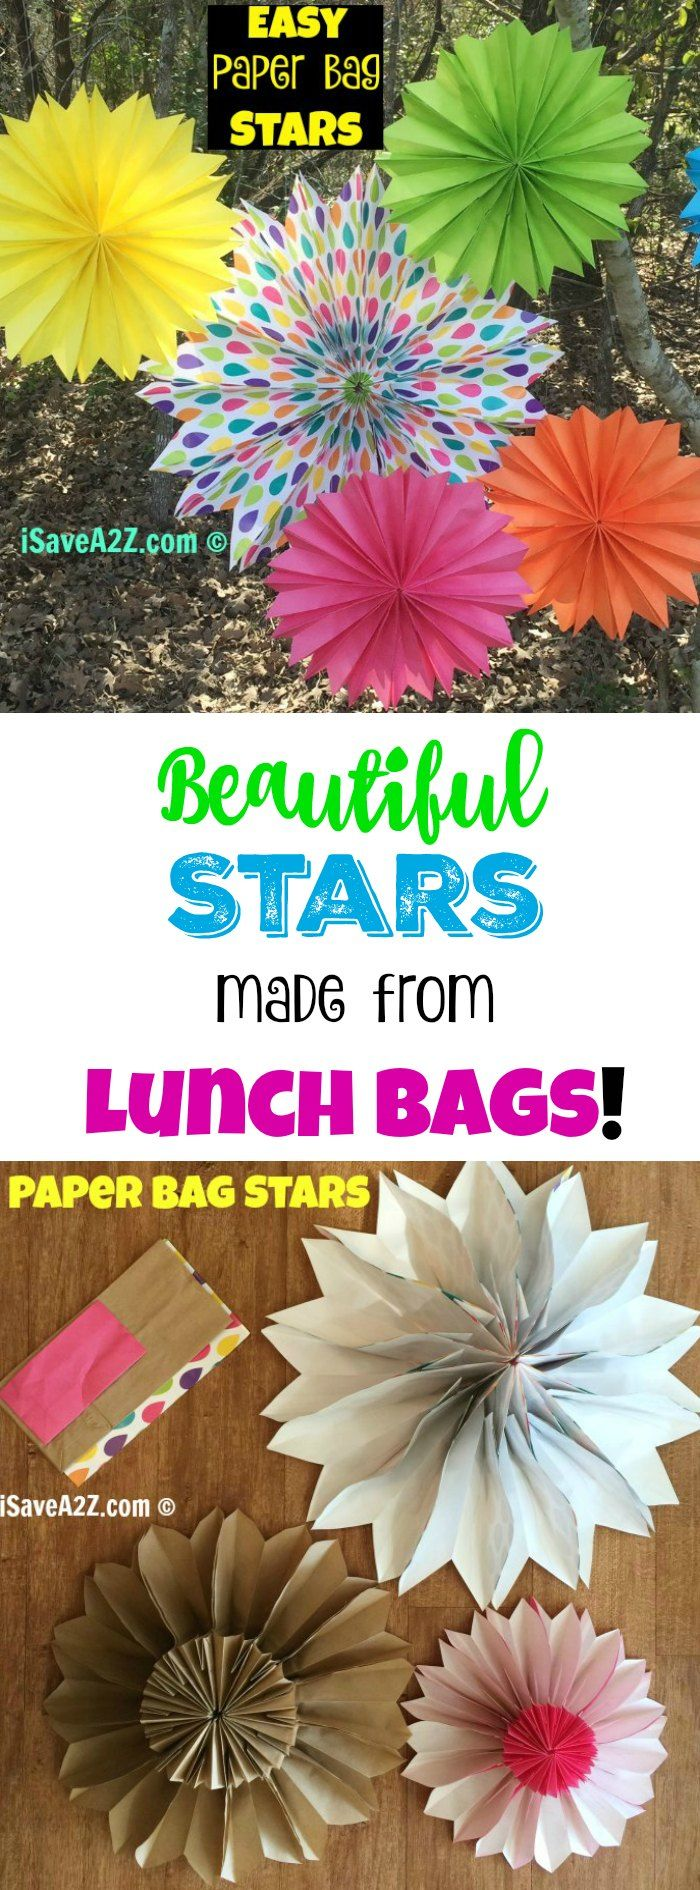 easy paper bag stars that are fast to make i love all the easy paper bag stars that are fast to make i love all the different colors